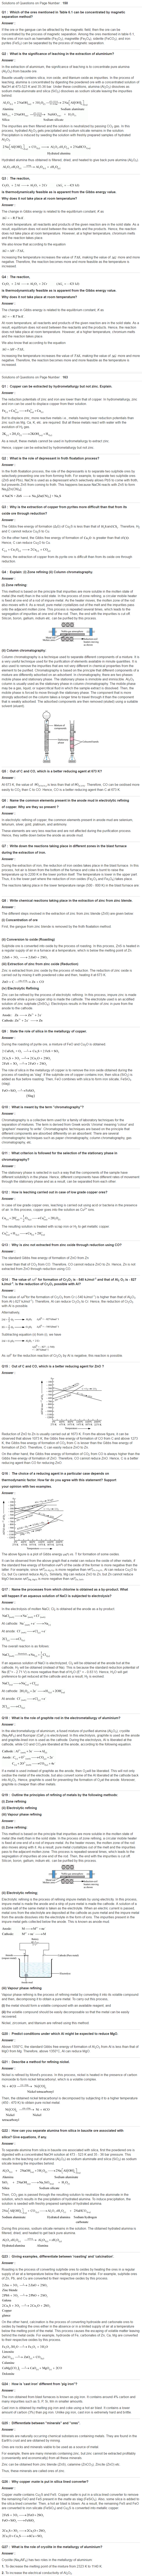 NCERT Solutions Class 12 Chemistry Chapter 6 General